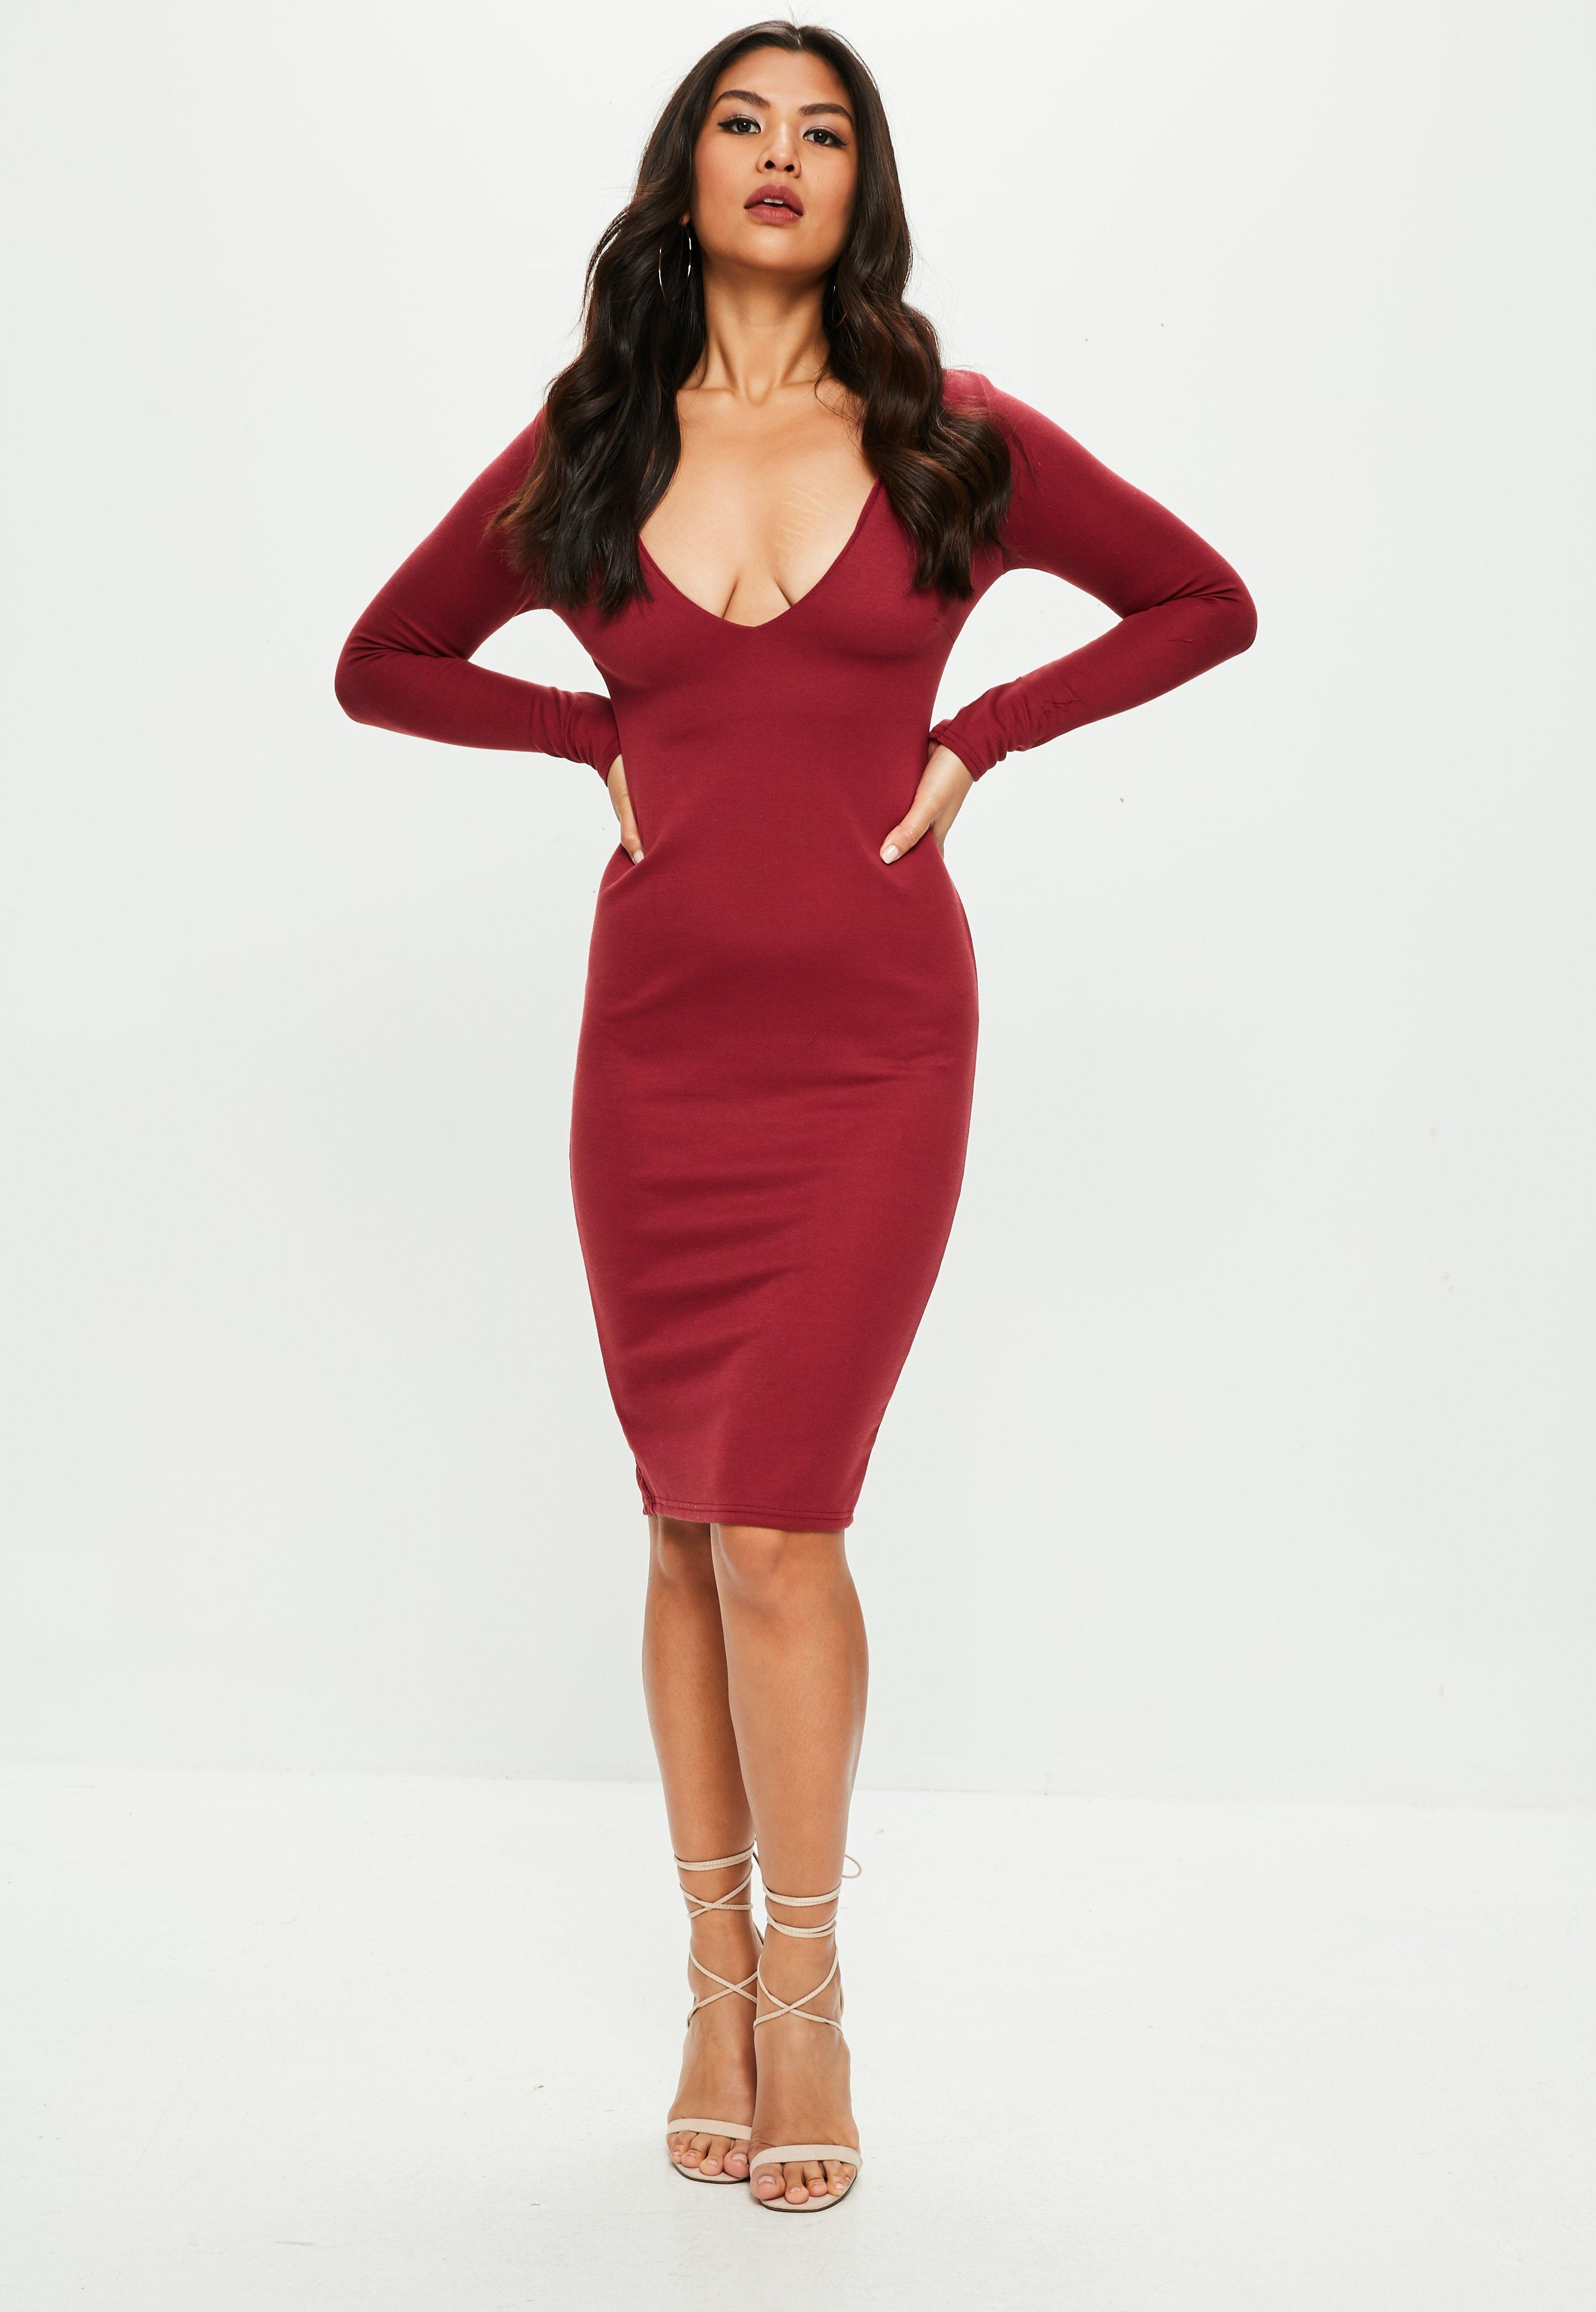 Missguided Burgundy Long Sleeved Midi Dress Buy Cheap Reliable Buy Cheap Largest Supplier Cheap Sale Shopping Online 5KGtDOsY